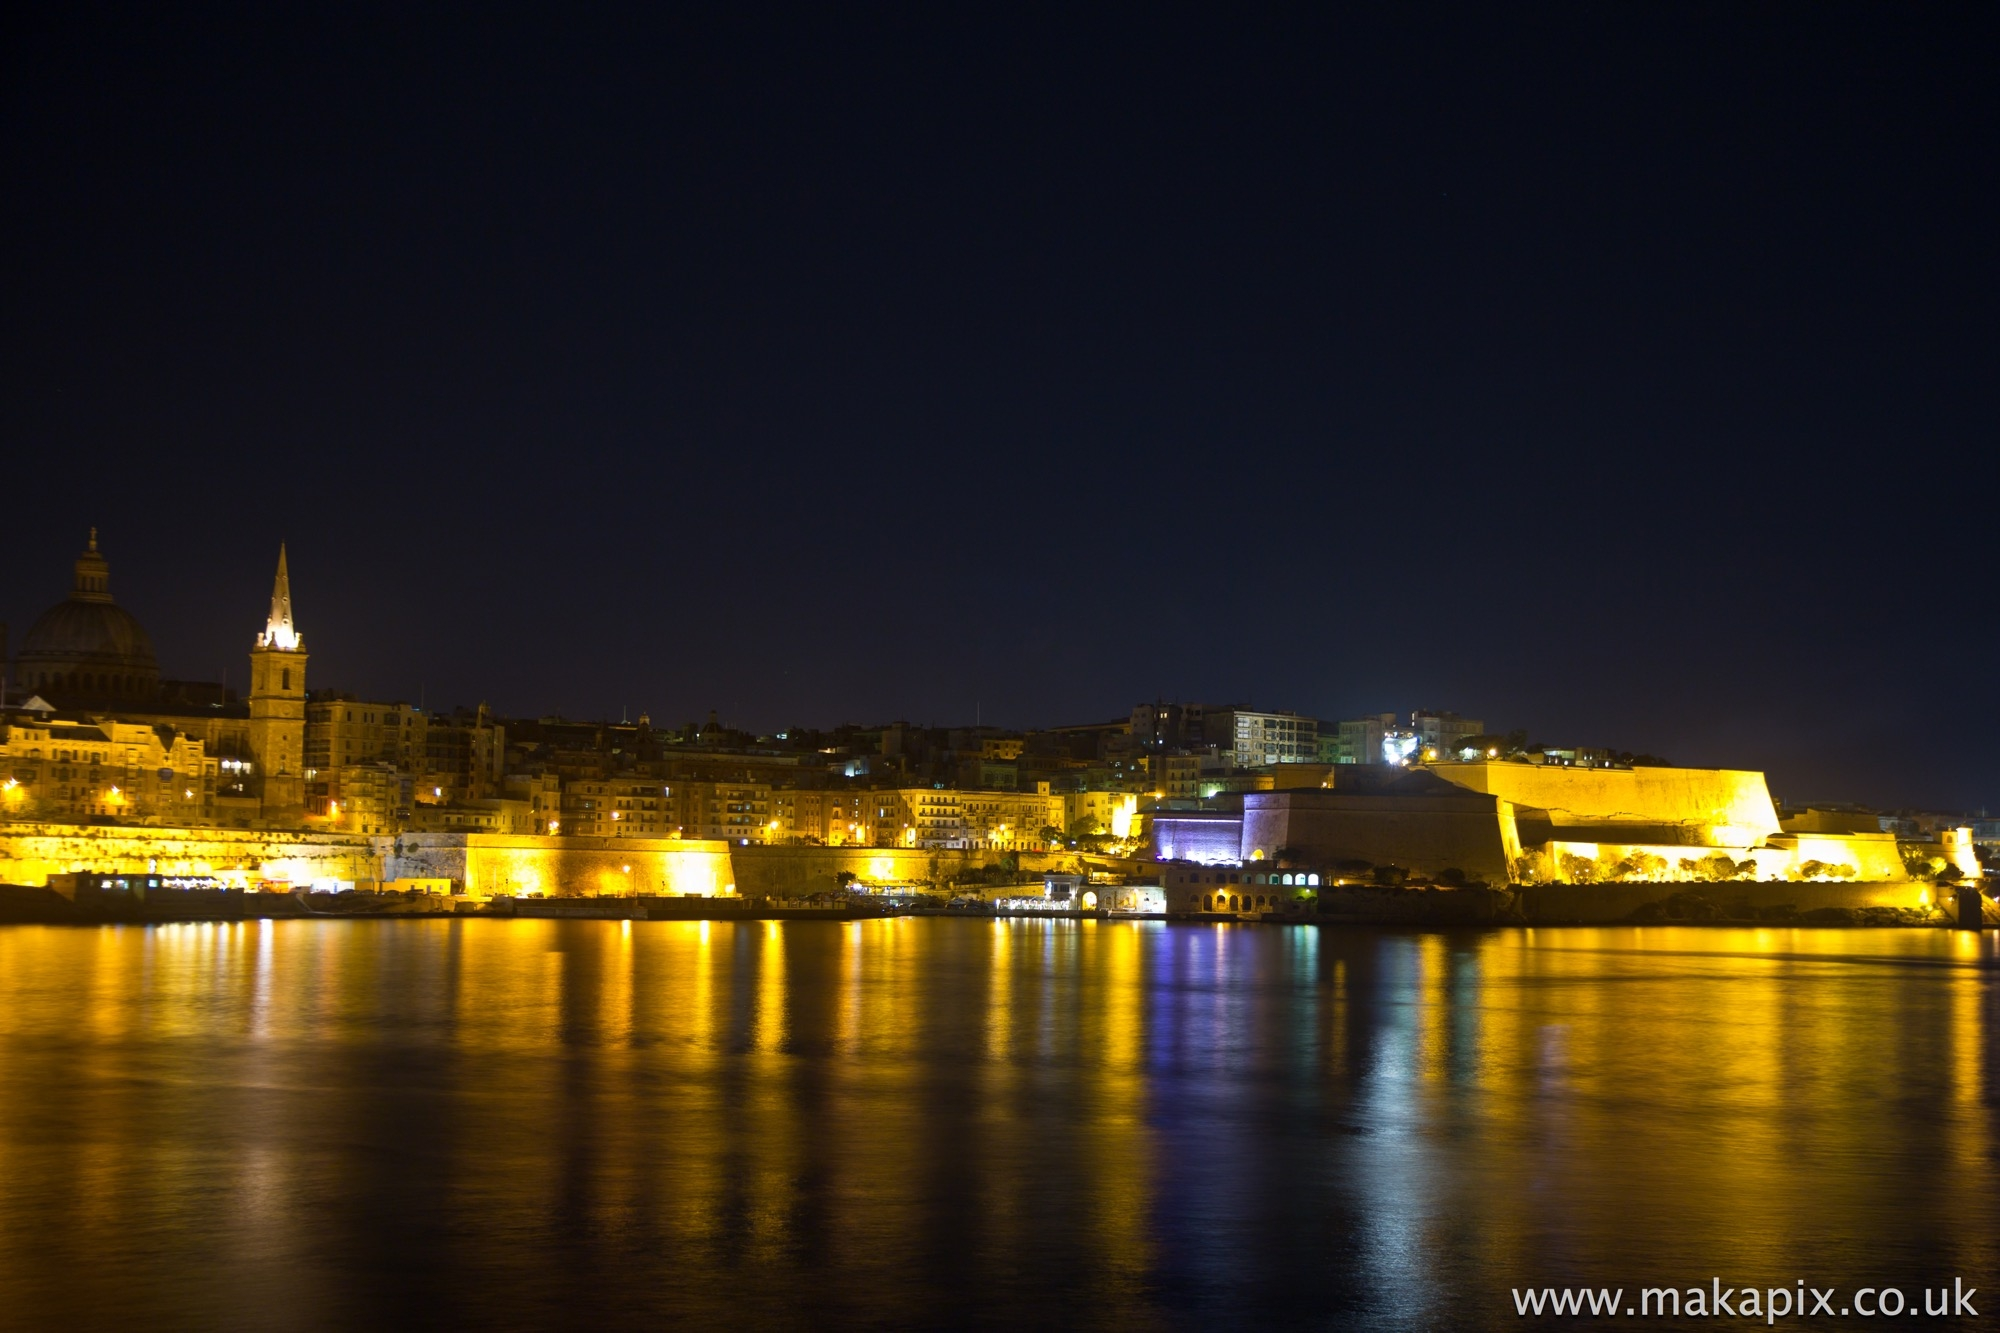 Malta-Valletta at Night 2014